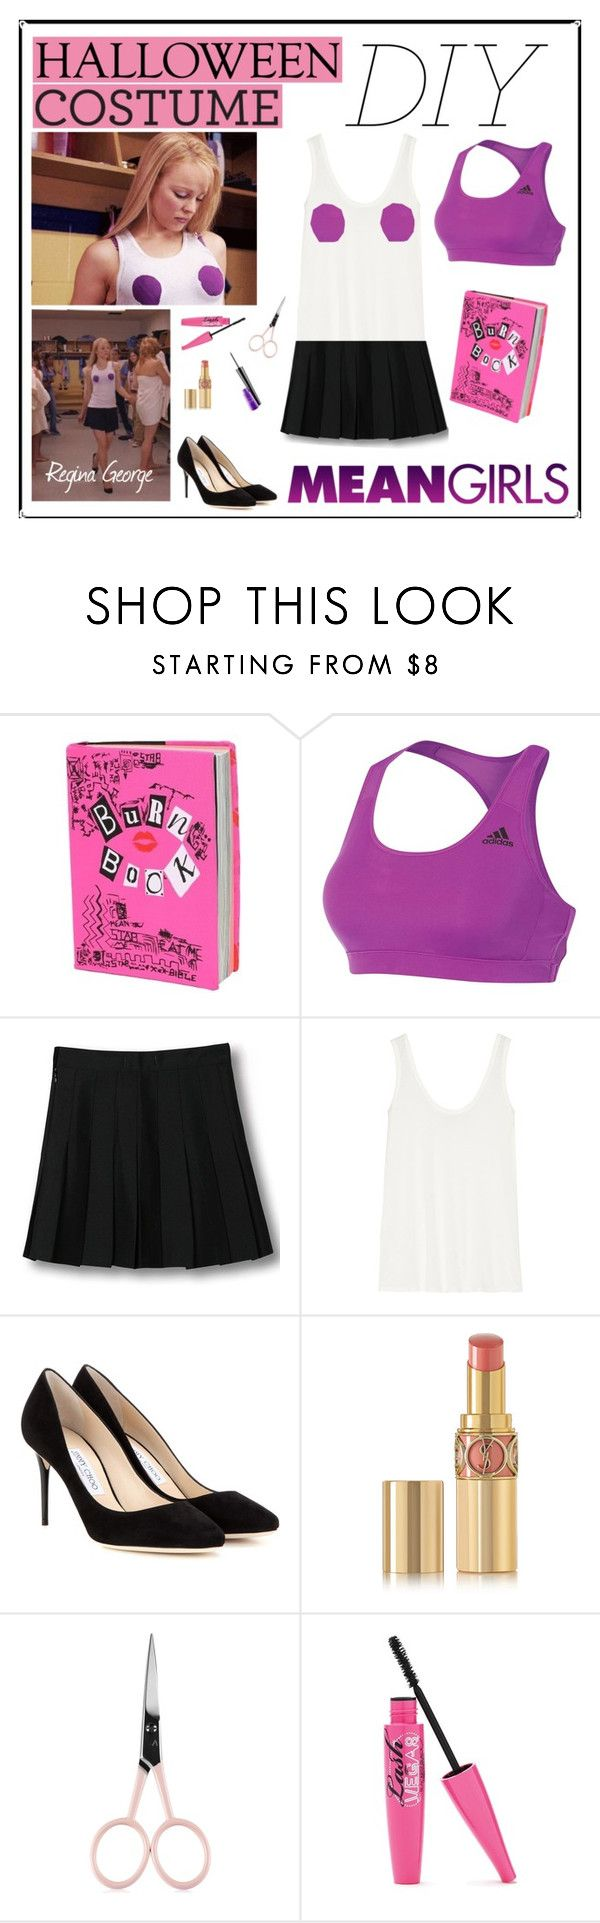 """Regina George Iconic Outfit DIY"" by carodubini ❤ liked on Polyvore featuring adidas, WithChic, The Row, Jimmy Choo, Yves Saint Laurent, Anastasia Beverly Hills and MAC Cosmetics"